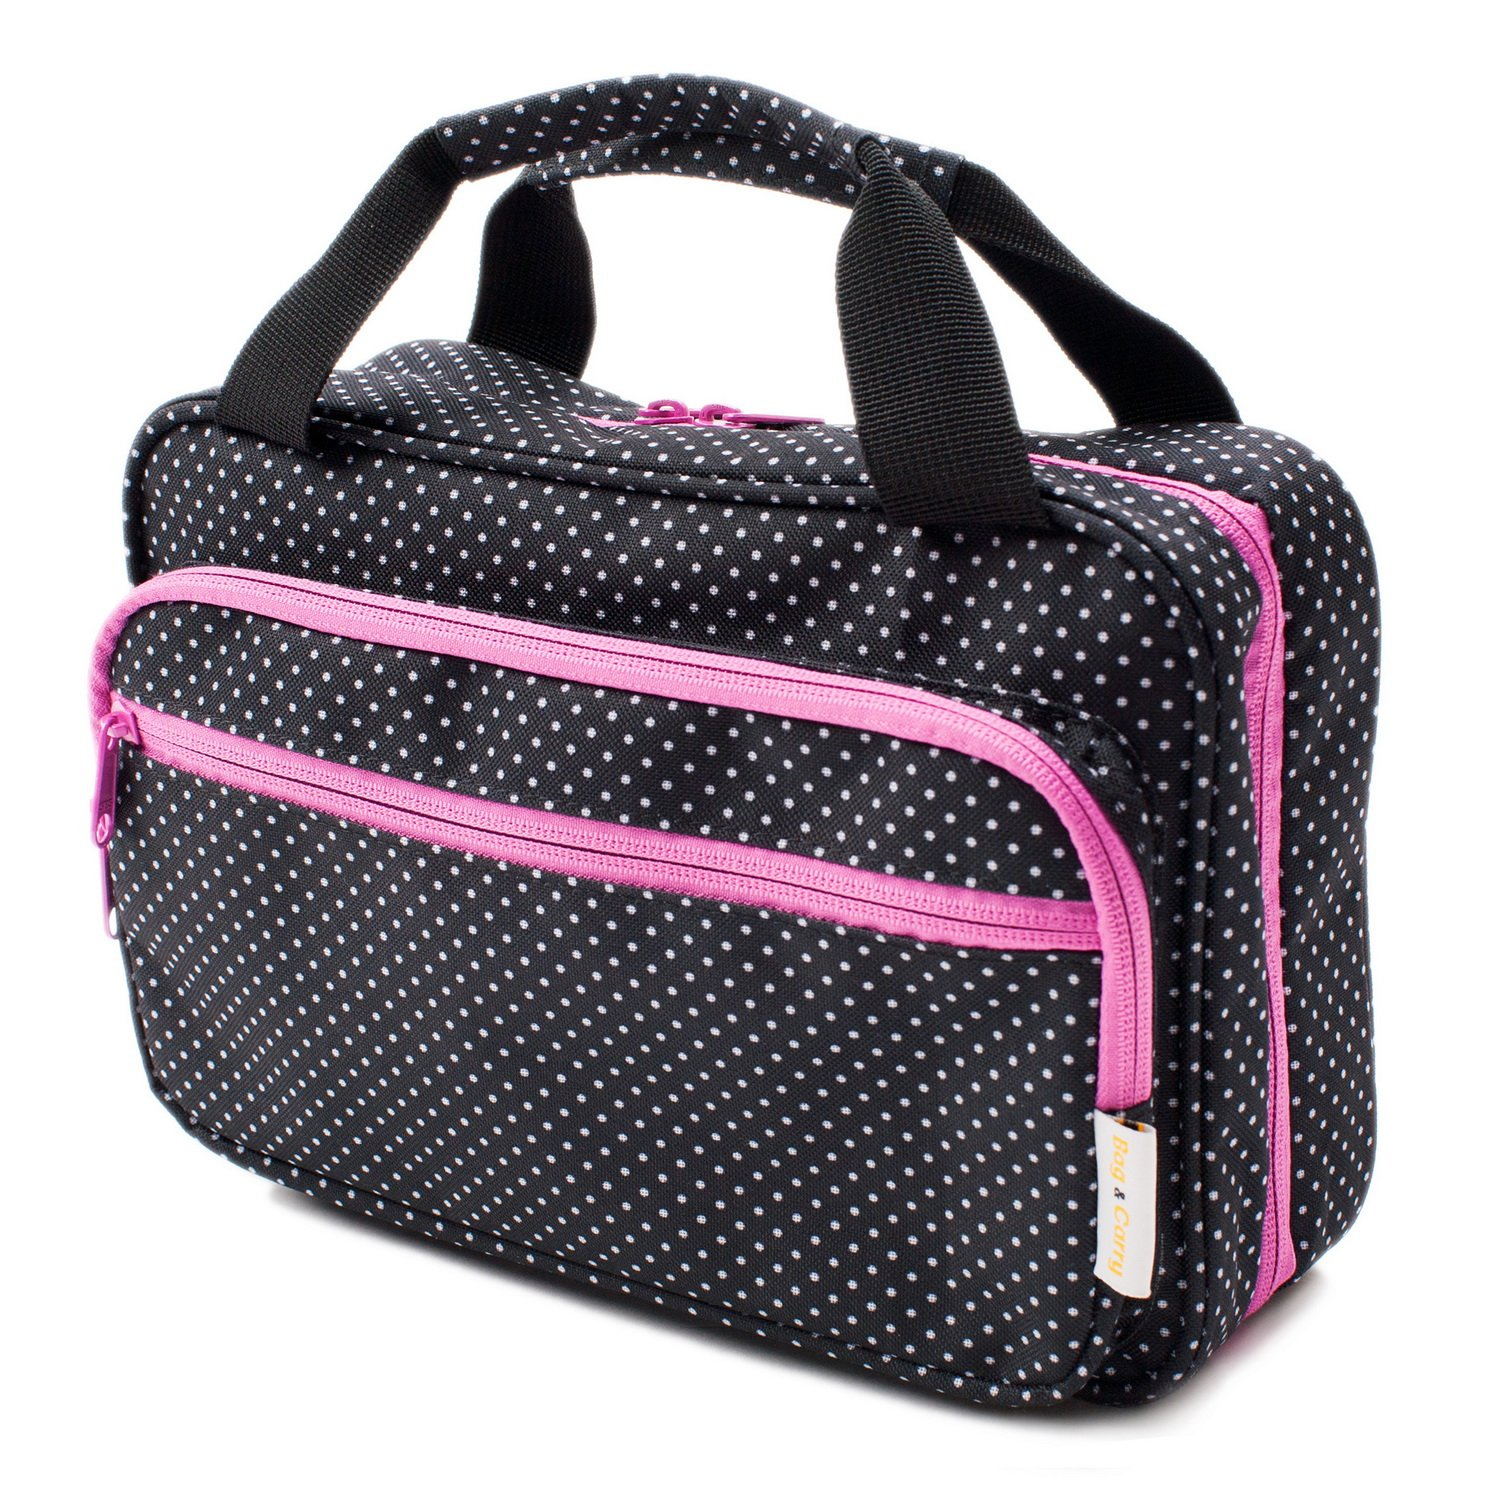 Versatile Travel Cosmetic Bag   Hanging Traveling Toiletry Bag Organizer  And Storage. Amazon com  Designer Hanging Toiletry Bag  Travel Cosmetics Bag by